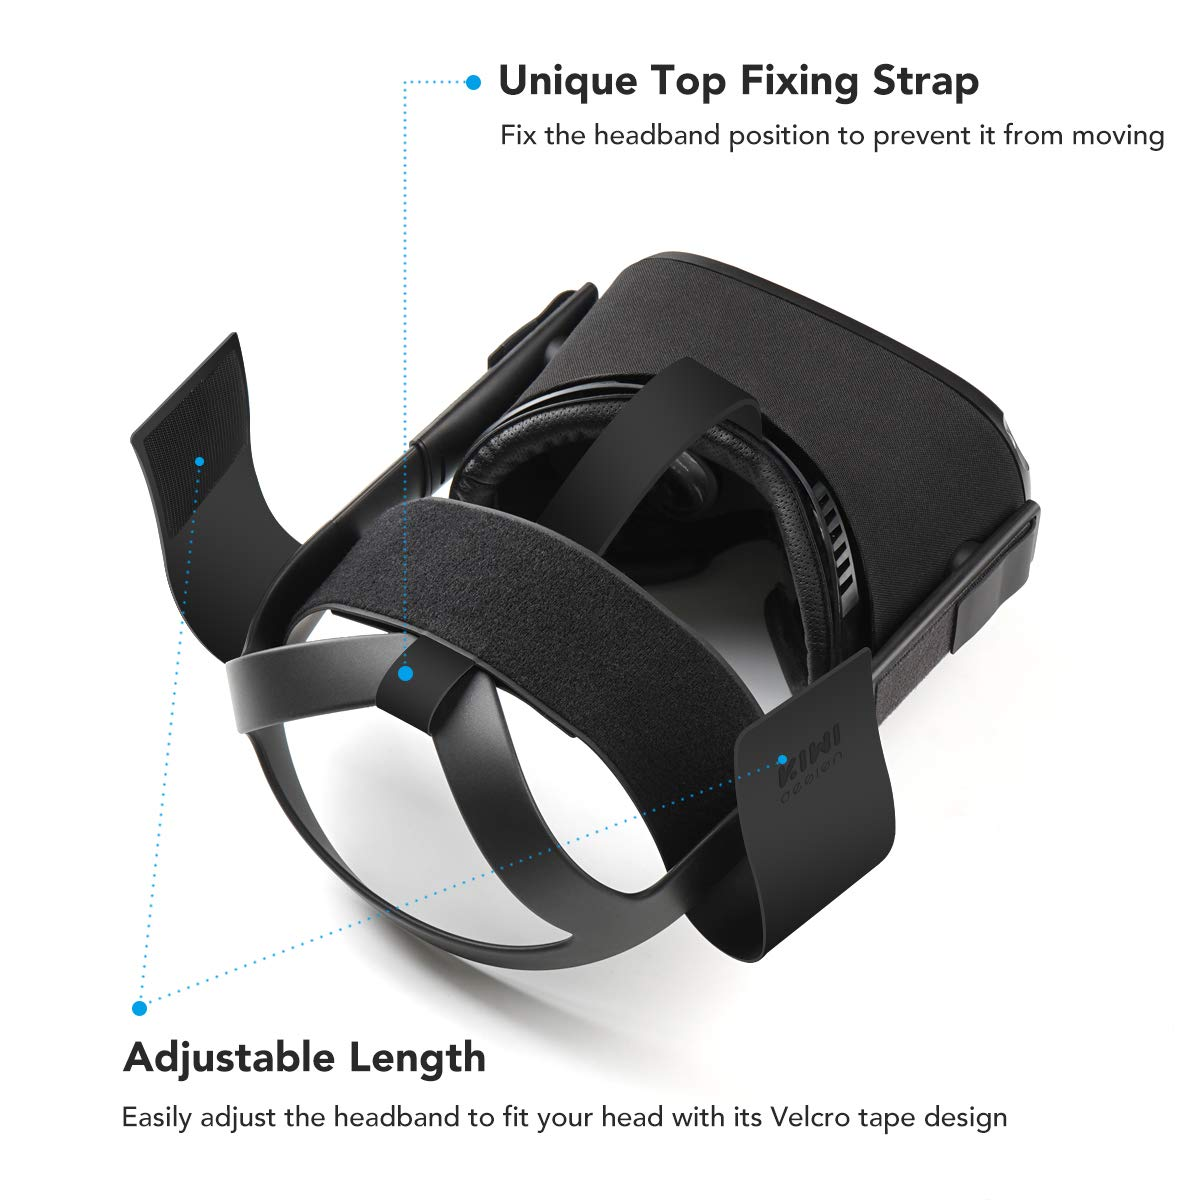 MASiKEN Silicone Face Mask Cover /& Head Strap Pad Cushion for Oculus Quest Headset Accessories with PU Leather /& Reduce Head Pressure Blue